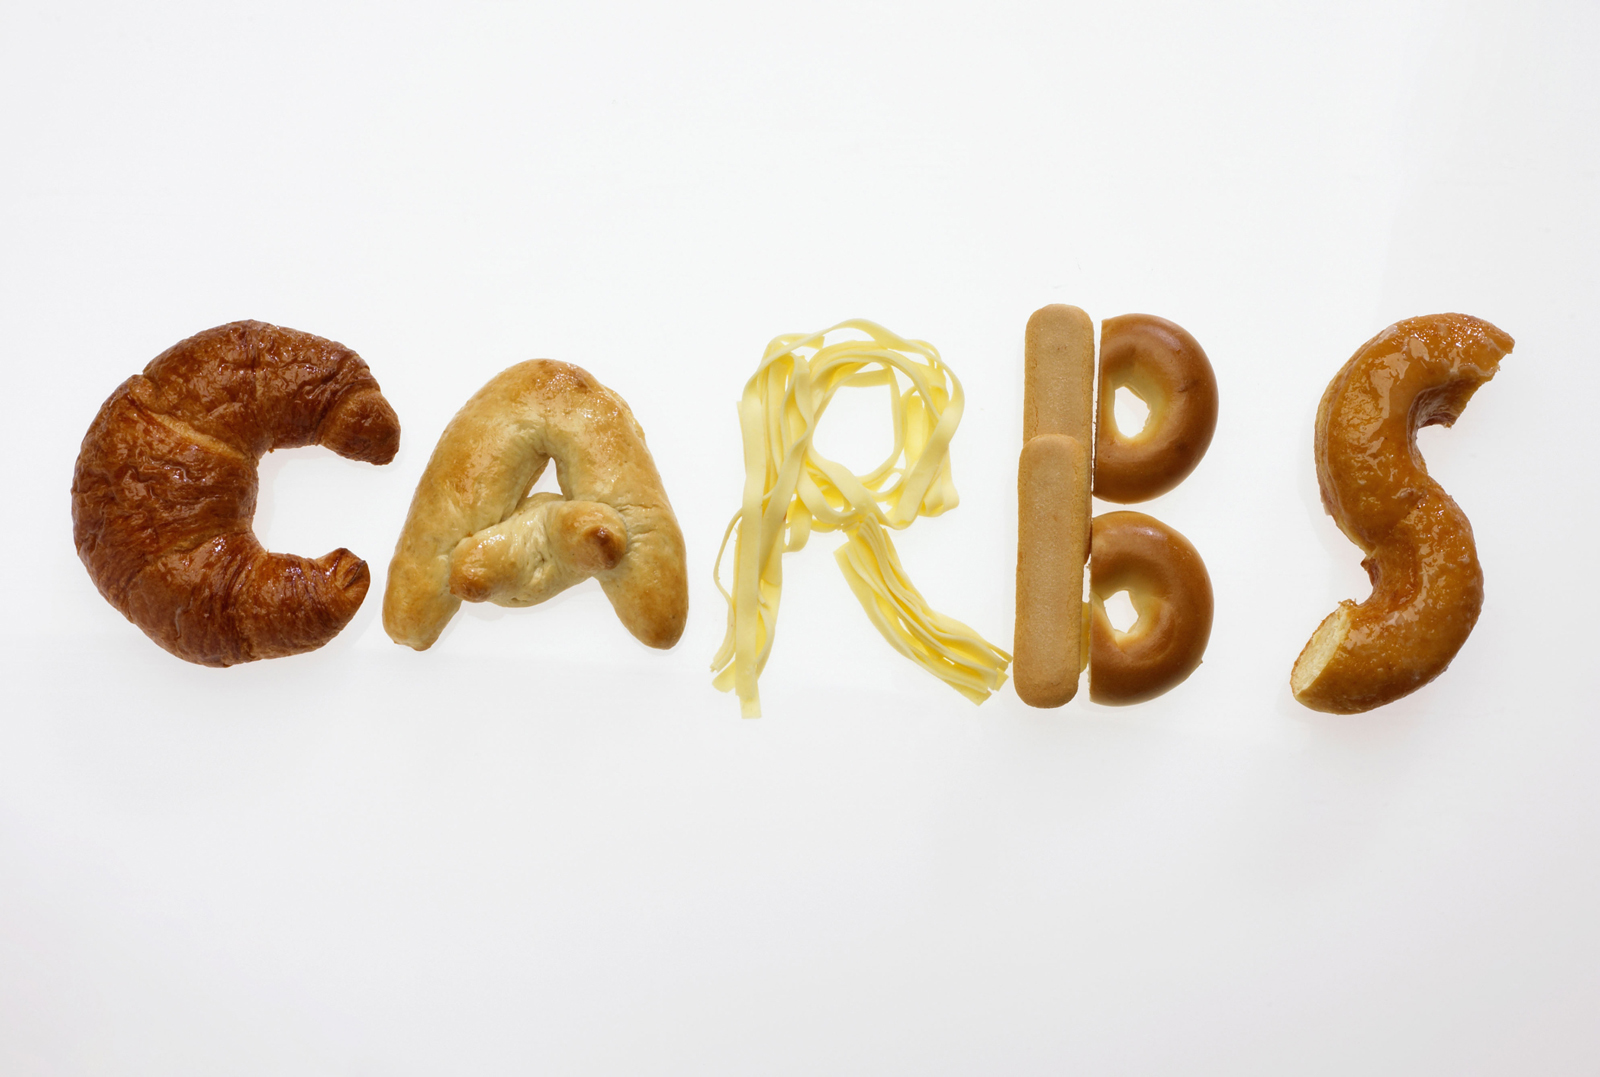 Calories Fat Carbs   Protein Per Day   The Science Of Eating